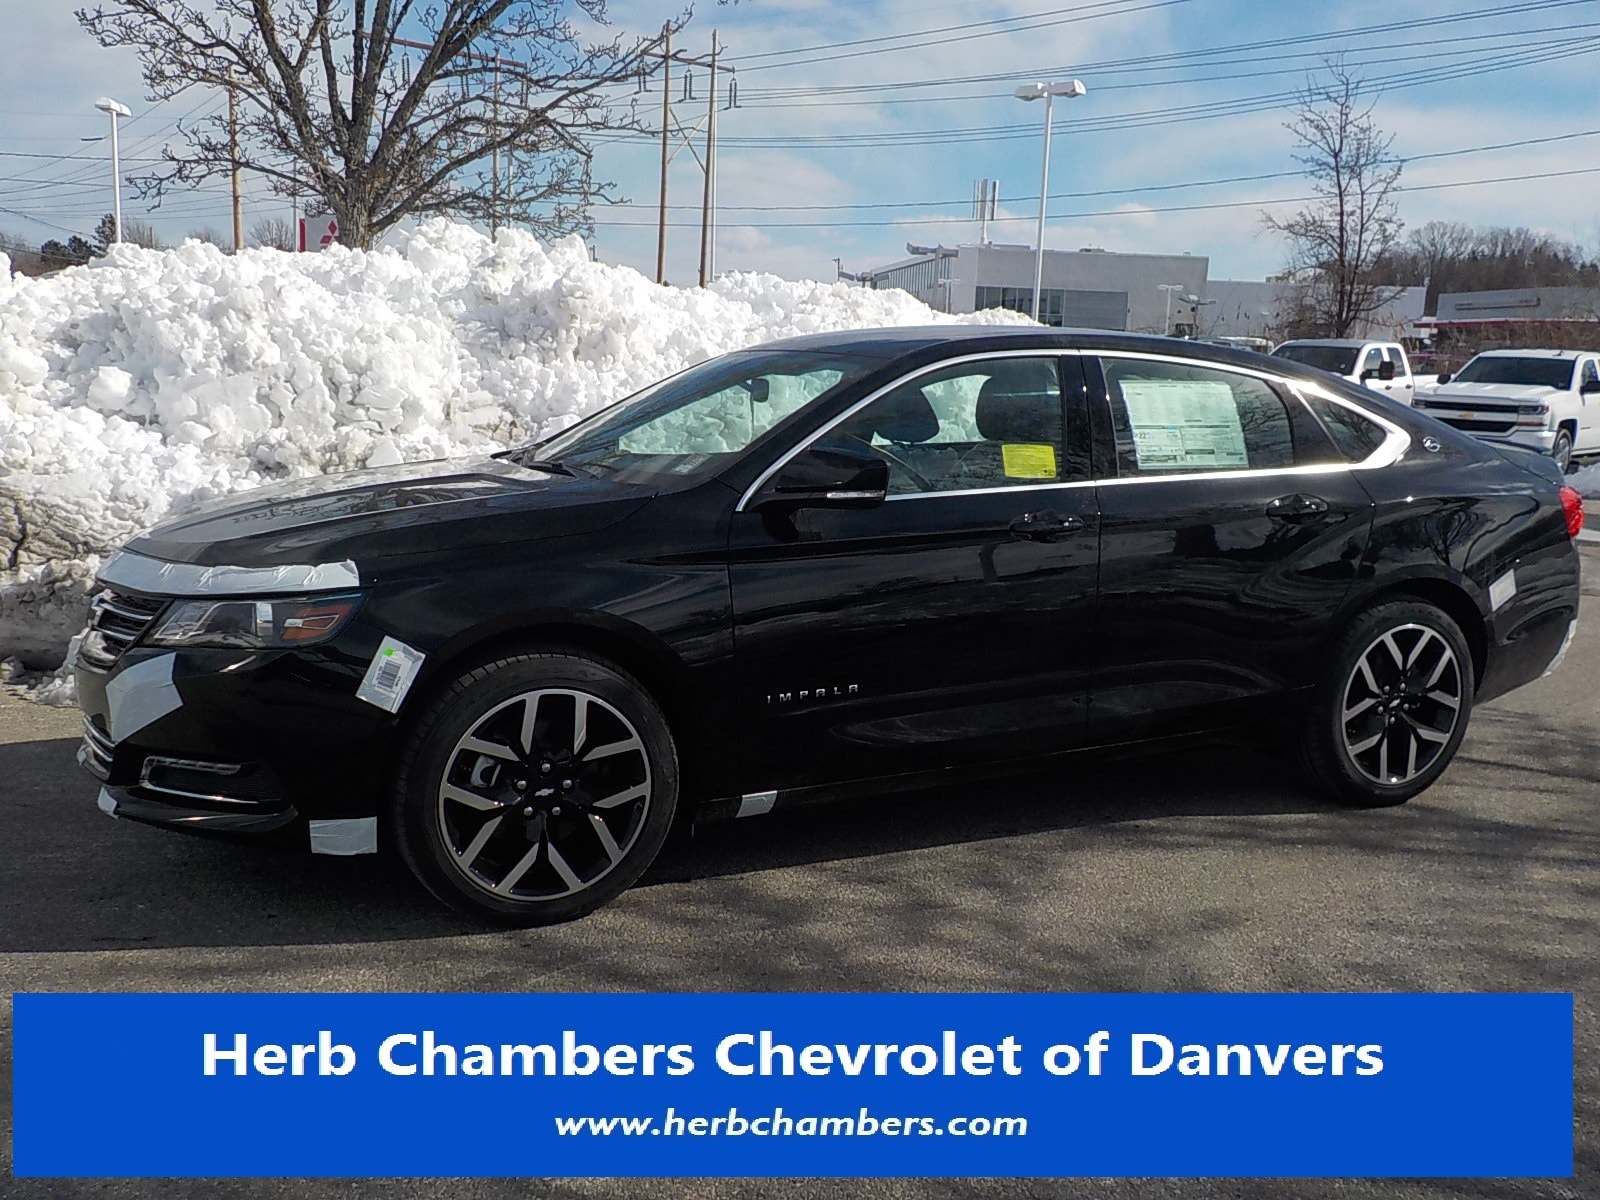 Herb Chambers Chevrolet >> New Chevrolet Impala In Danvers Wakefield Ma Herb Chambers